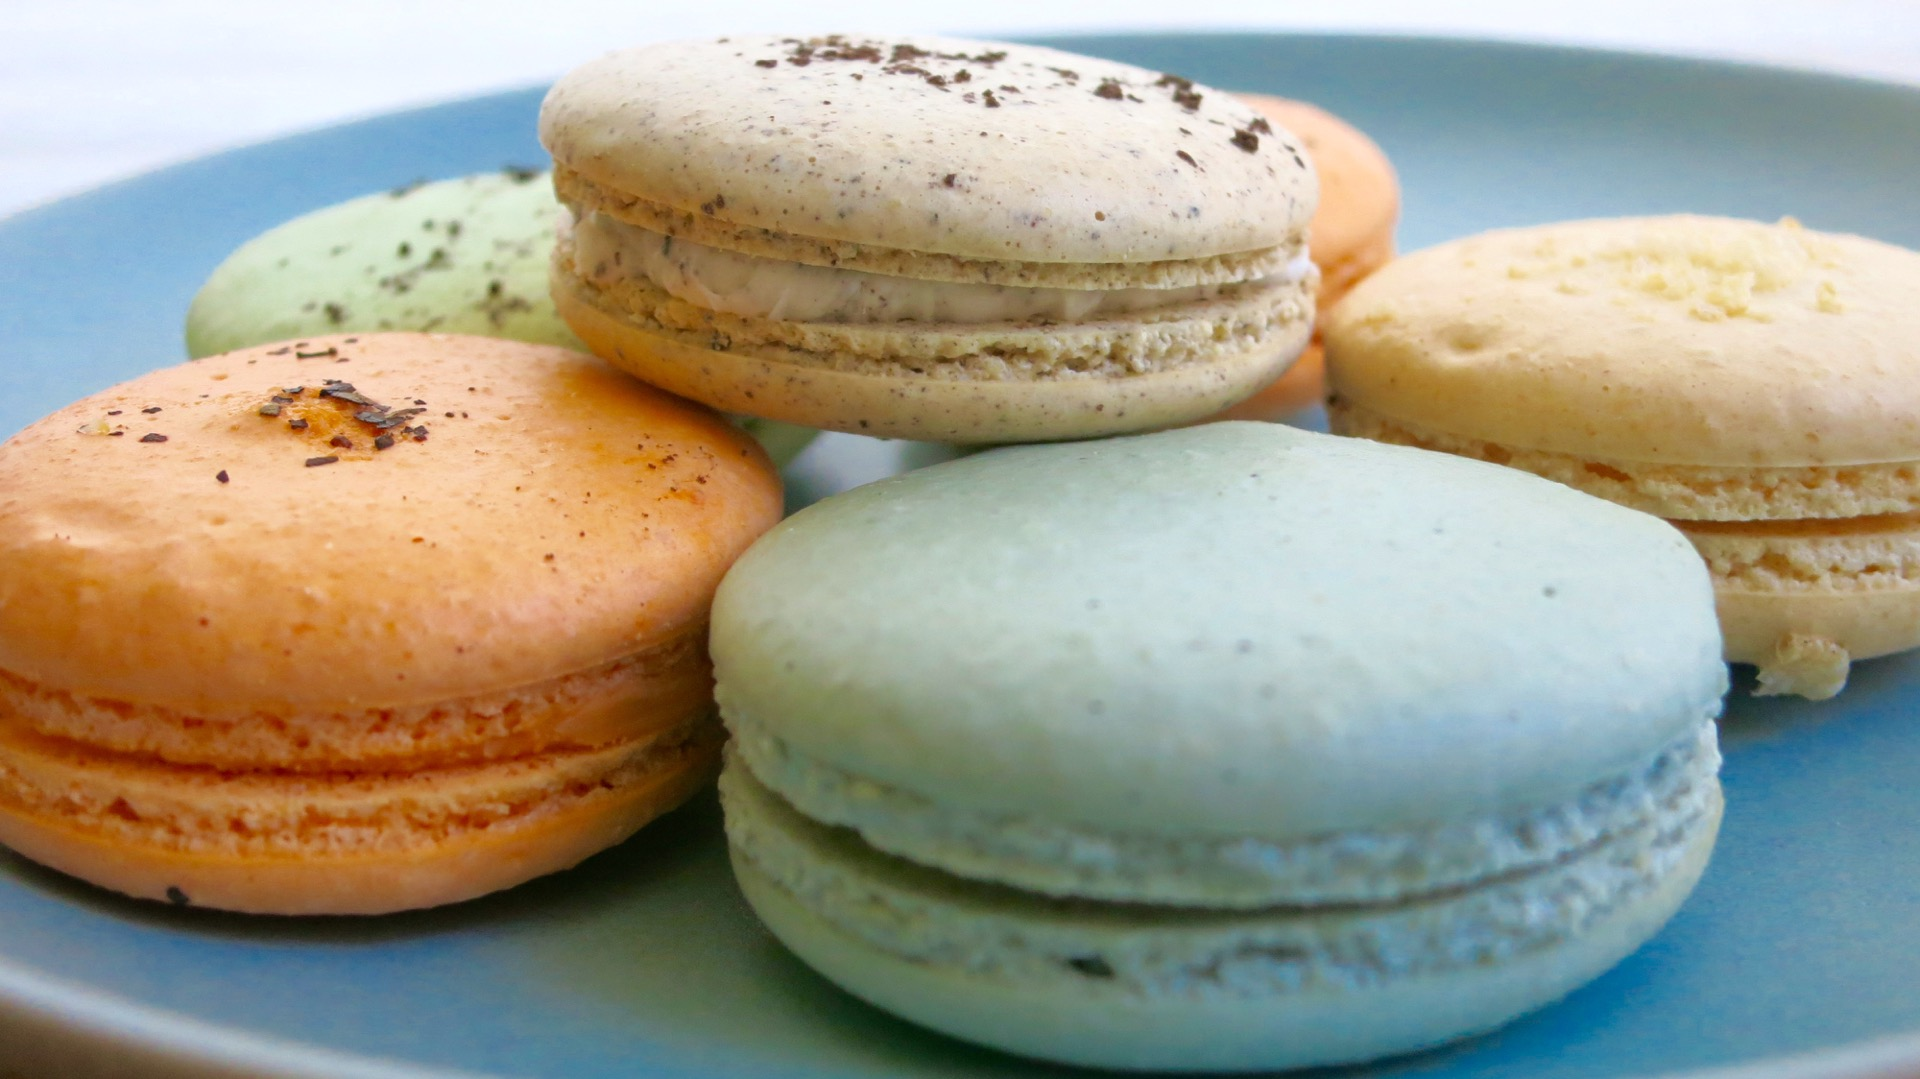 Oakland City Center's Cupcake Cove also carries a small selection of Natalie's Macarons.